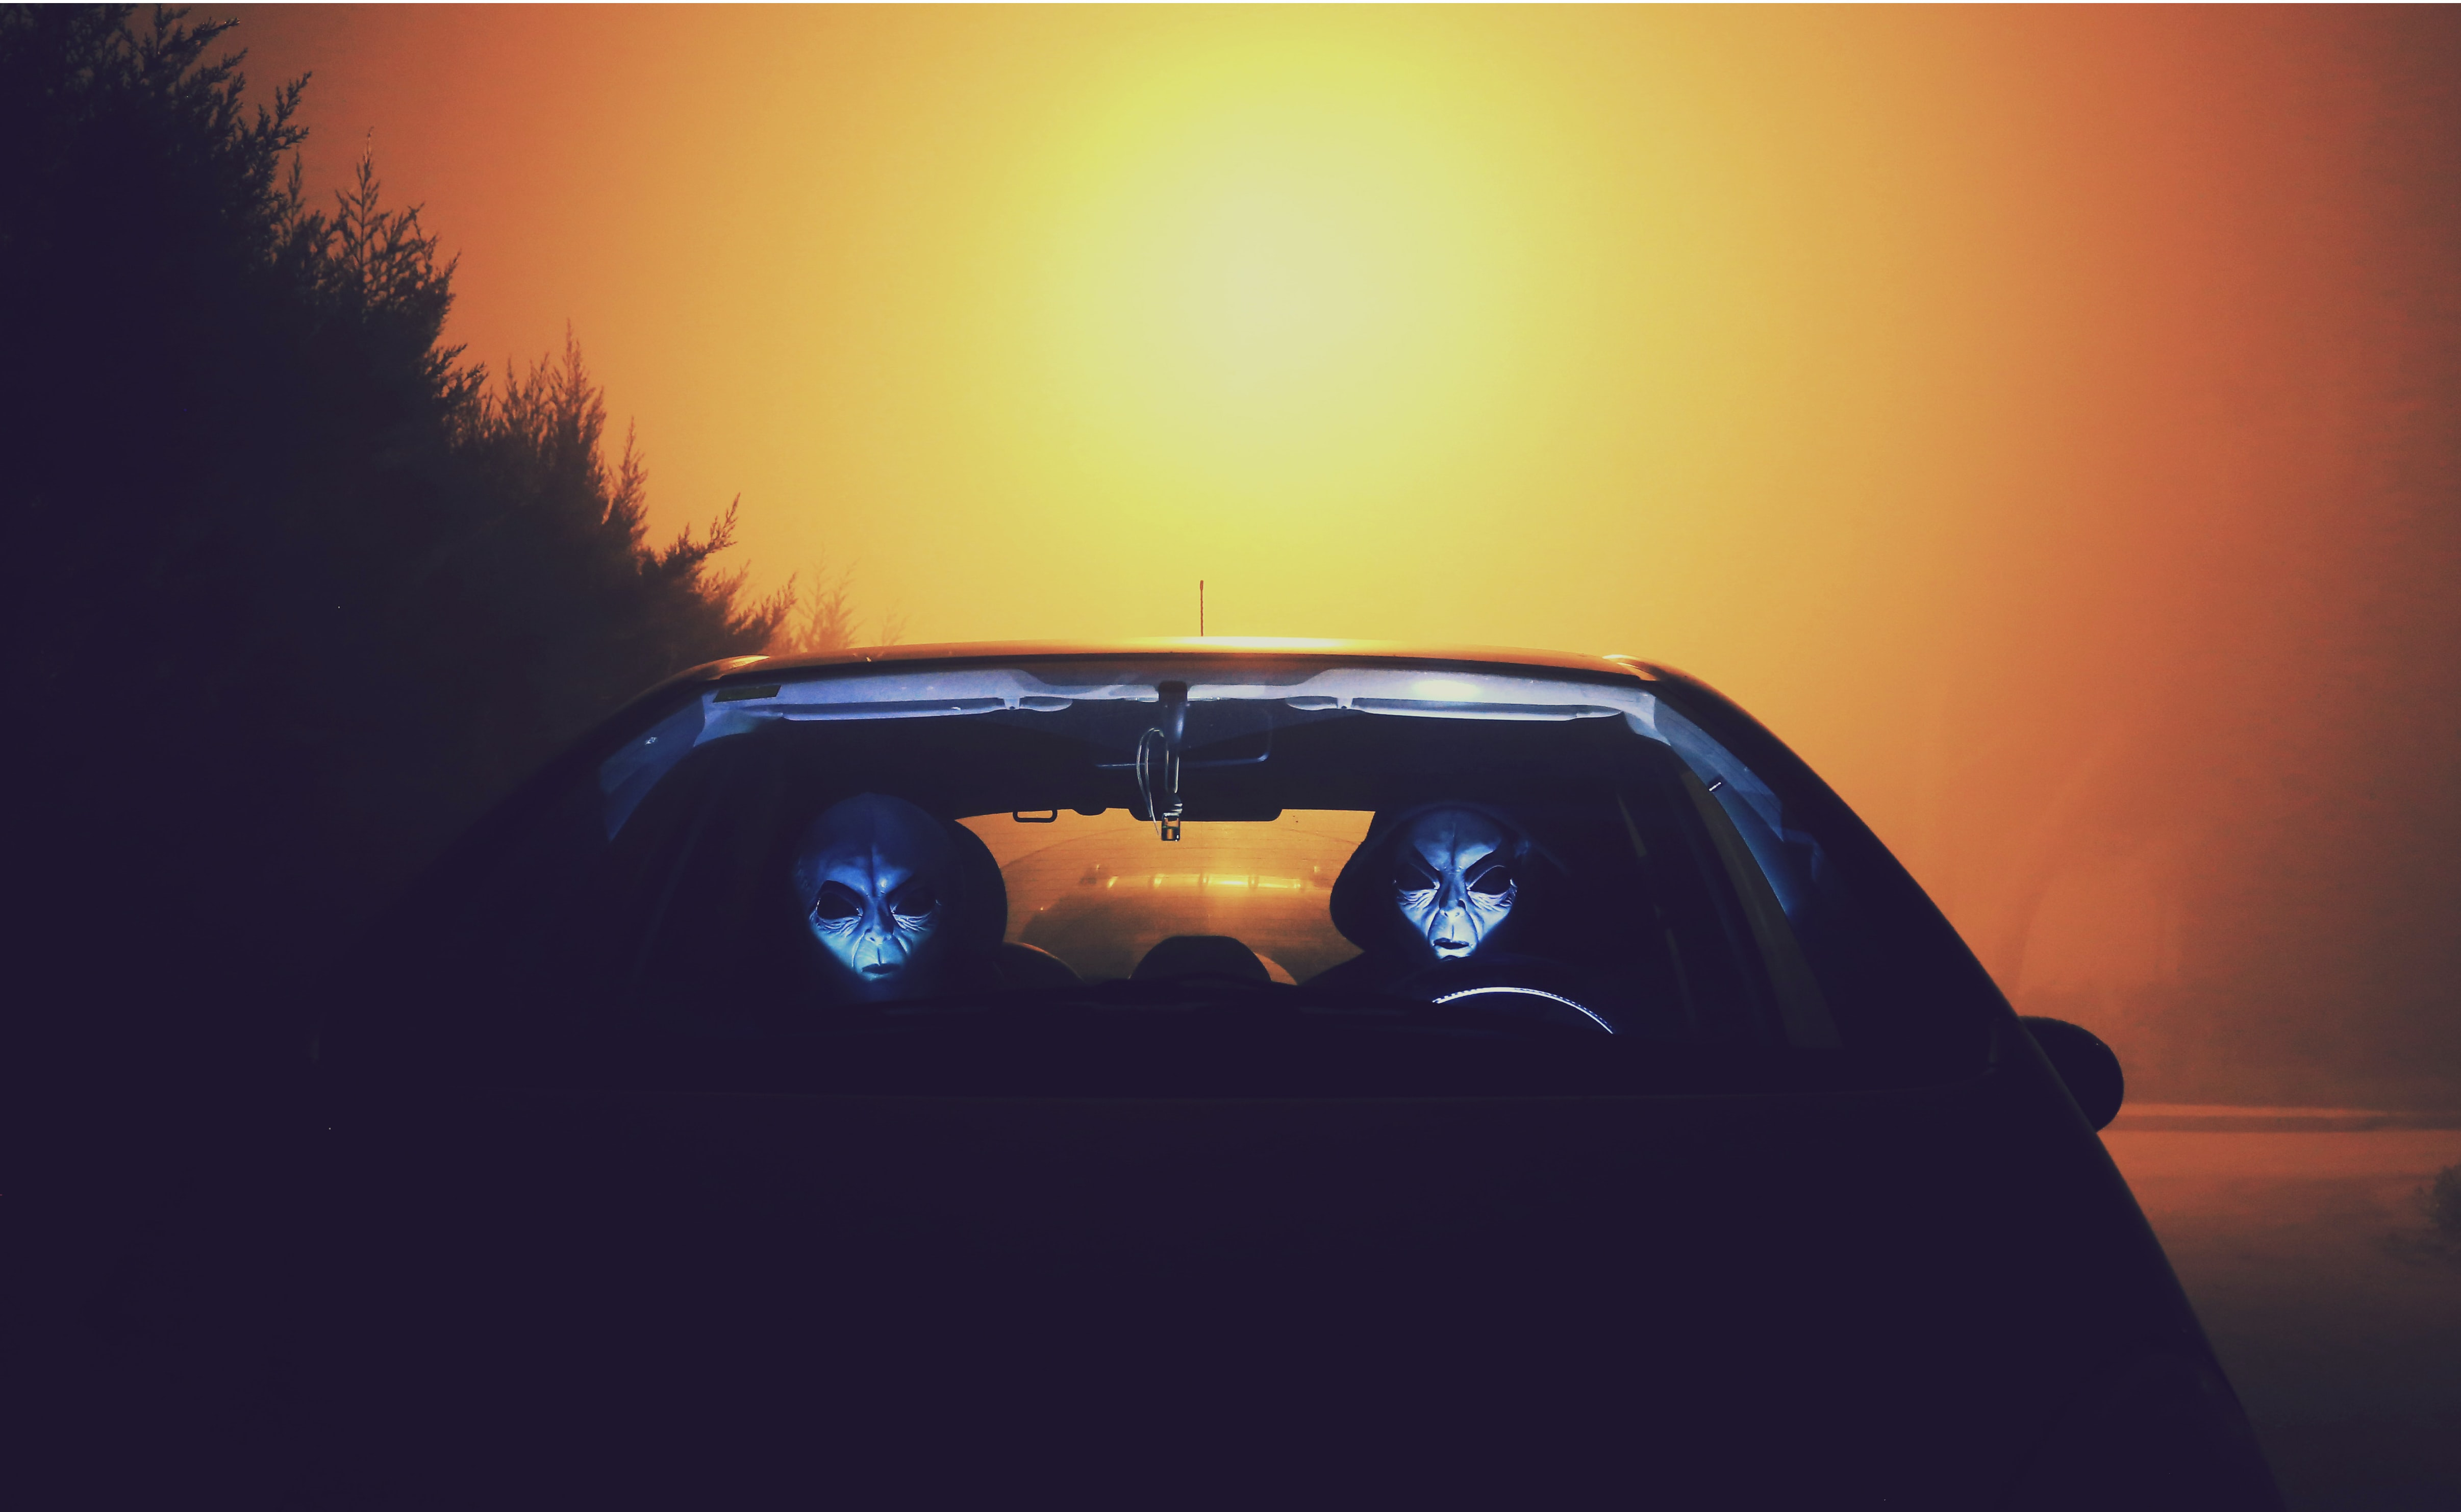 Two aliens in the car driving away from the Sun in Catalonia